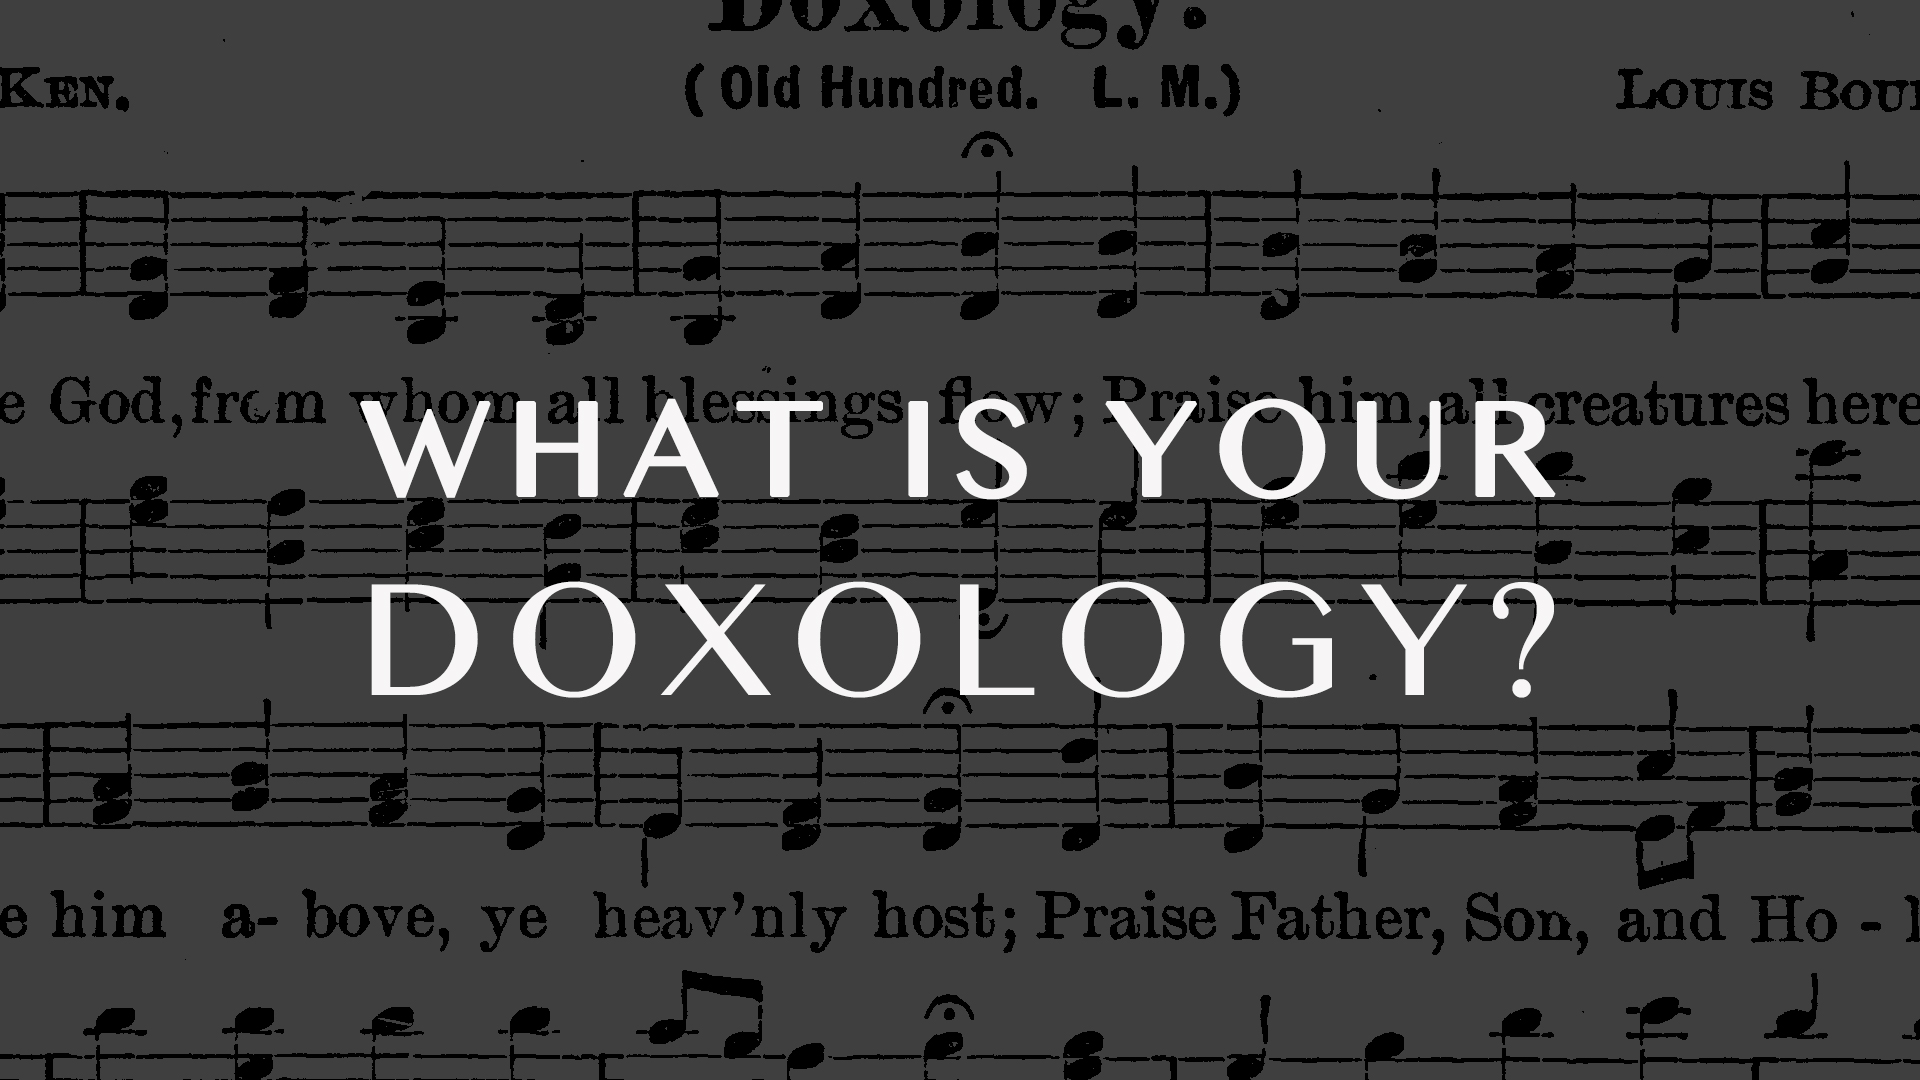 doxology-praise-easter-lent-Jesus-paul-romans